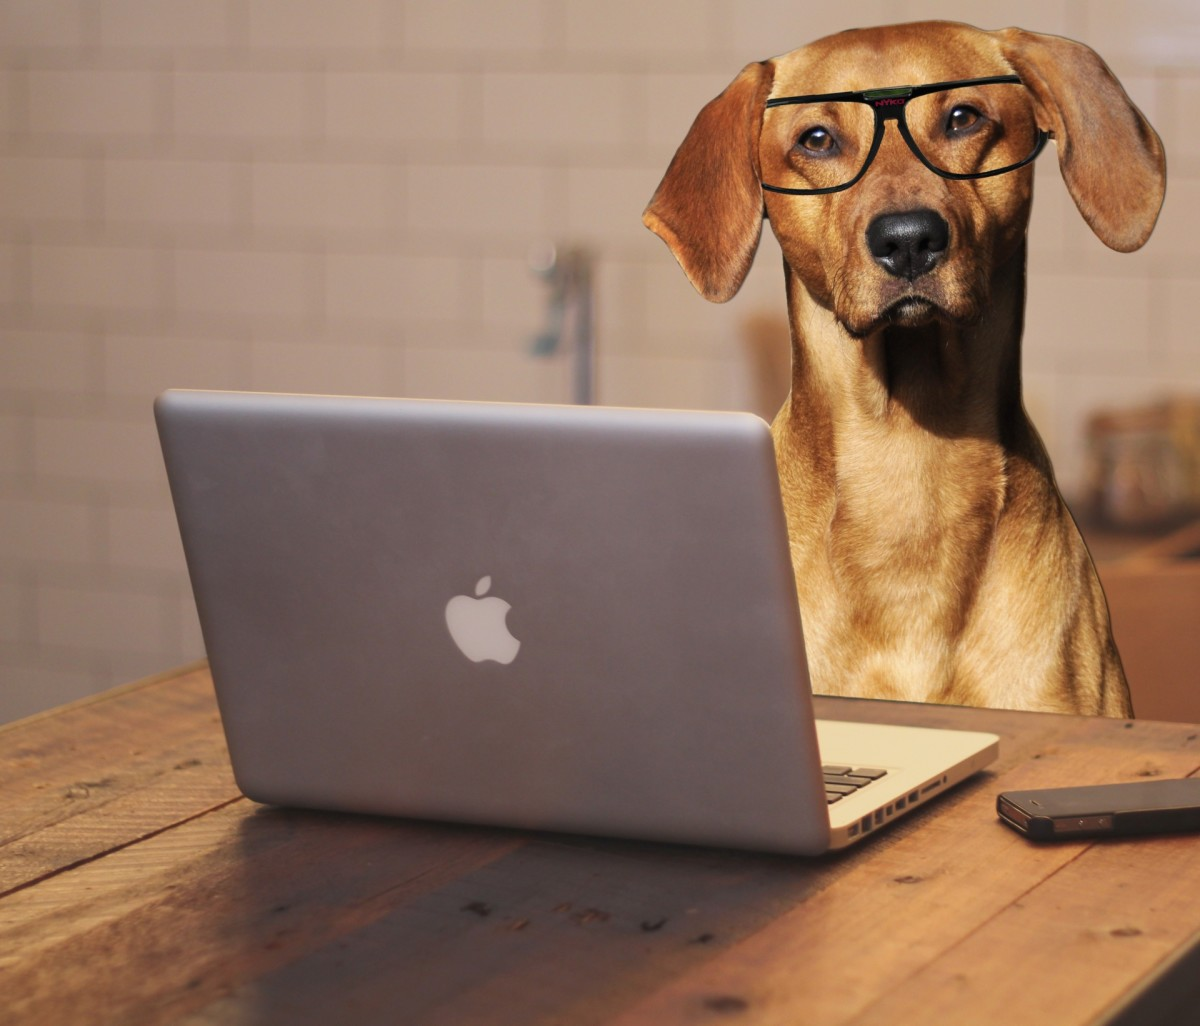 Actual picture of me playing RuneScape. I am an intellectual dog.